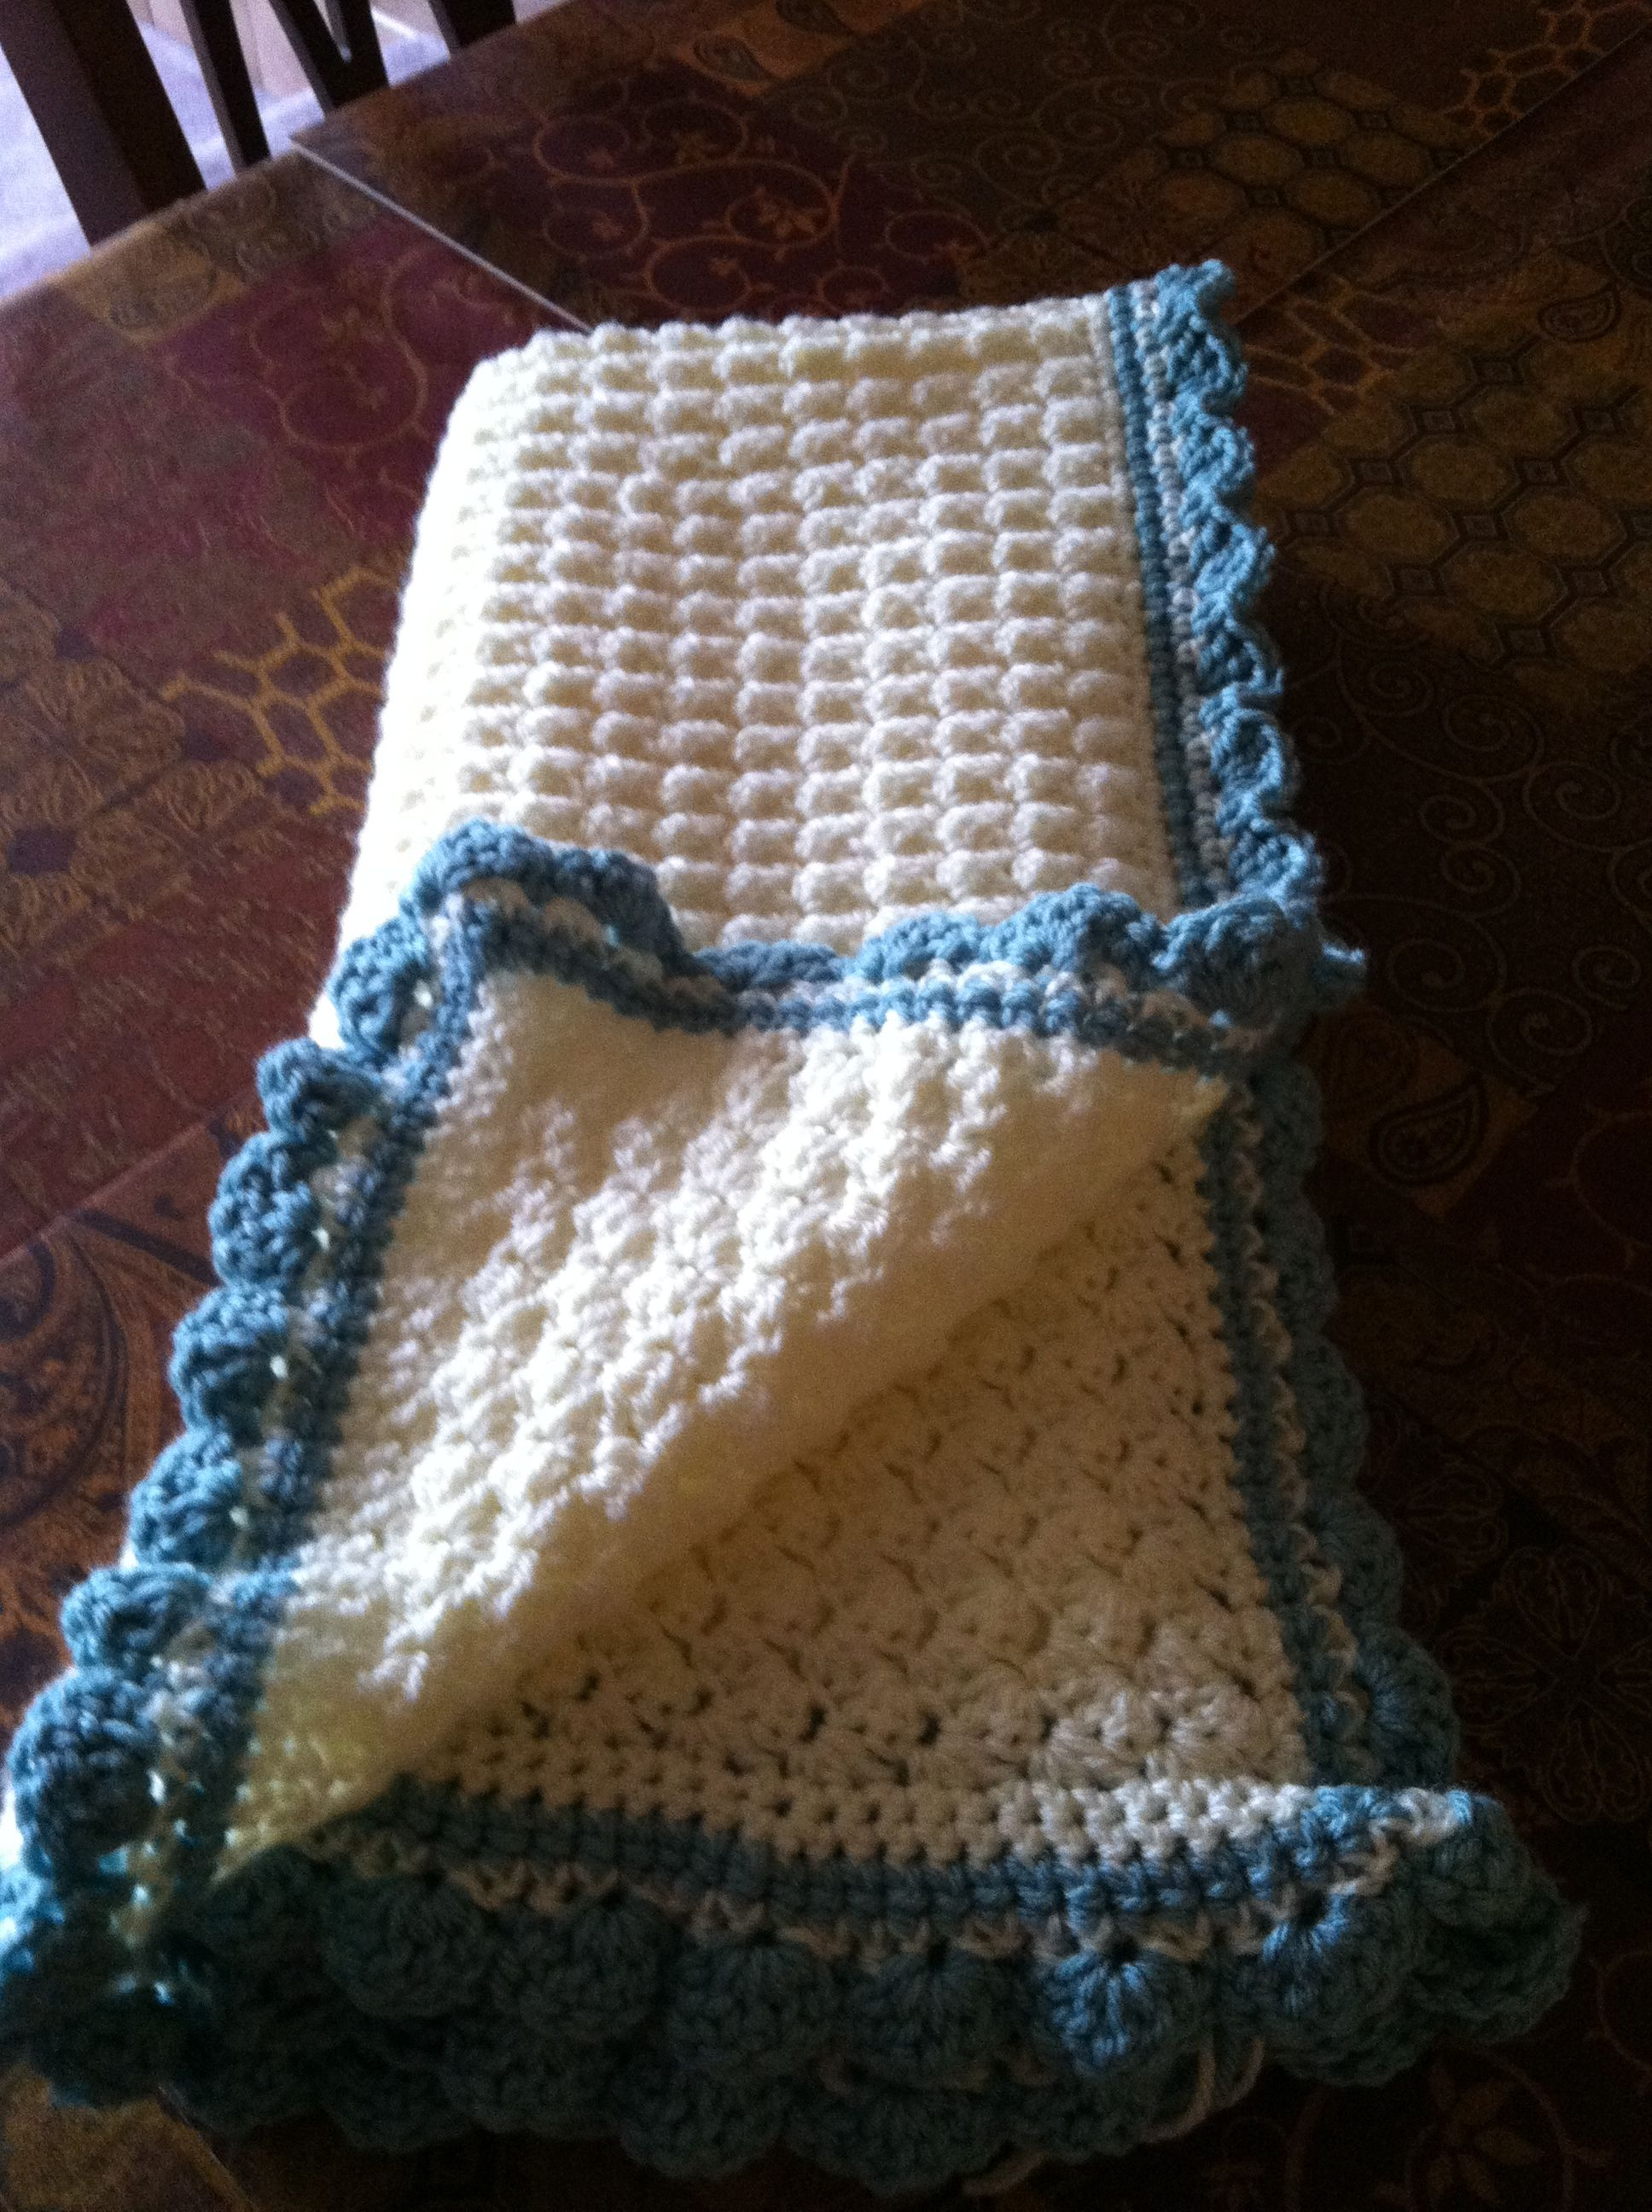 Crochet - Baby blanket (pattern available at http://moderngracedesign.blogspot.ca/2012/09/baby-blanket-free-pattern.html)